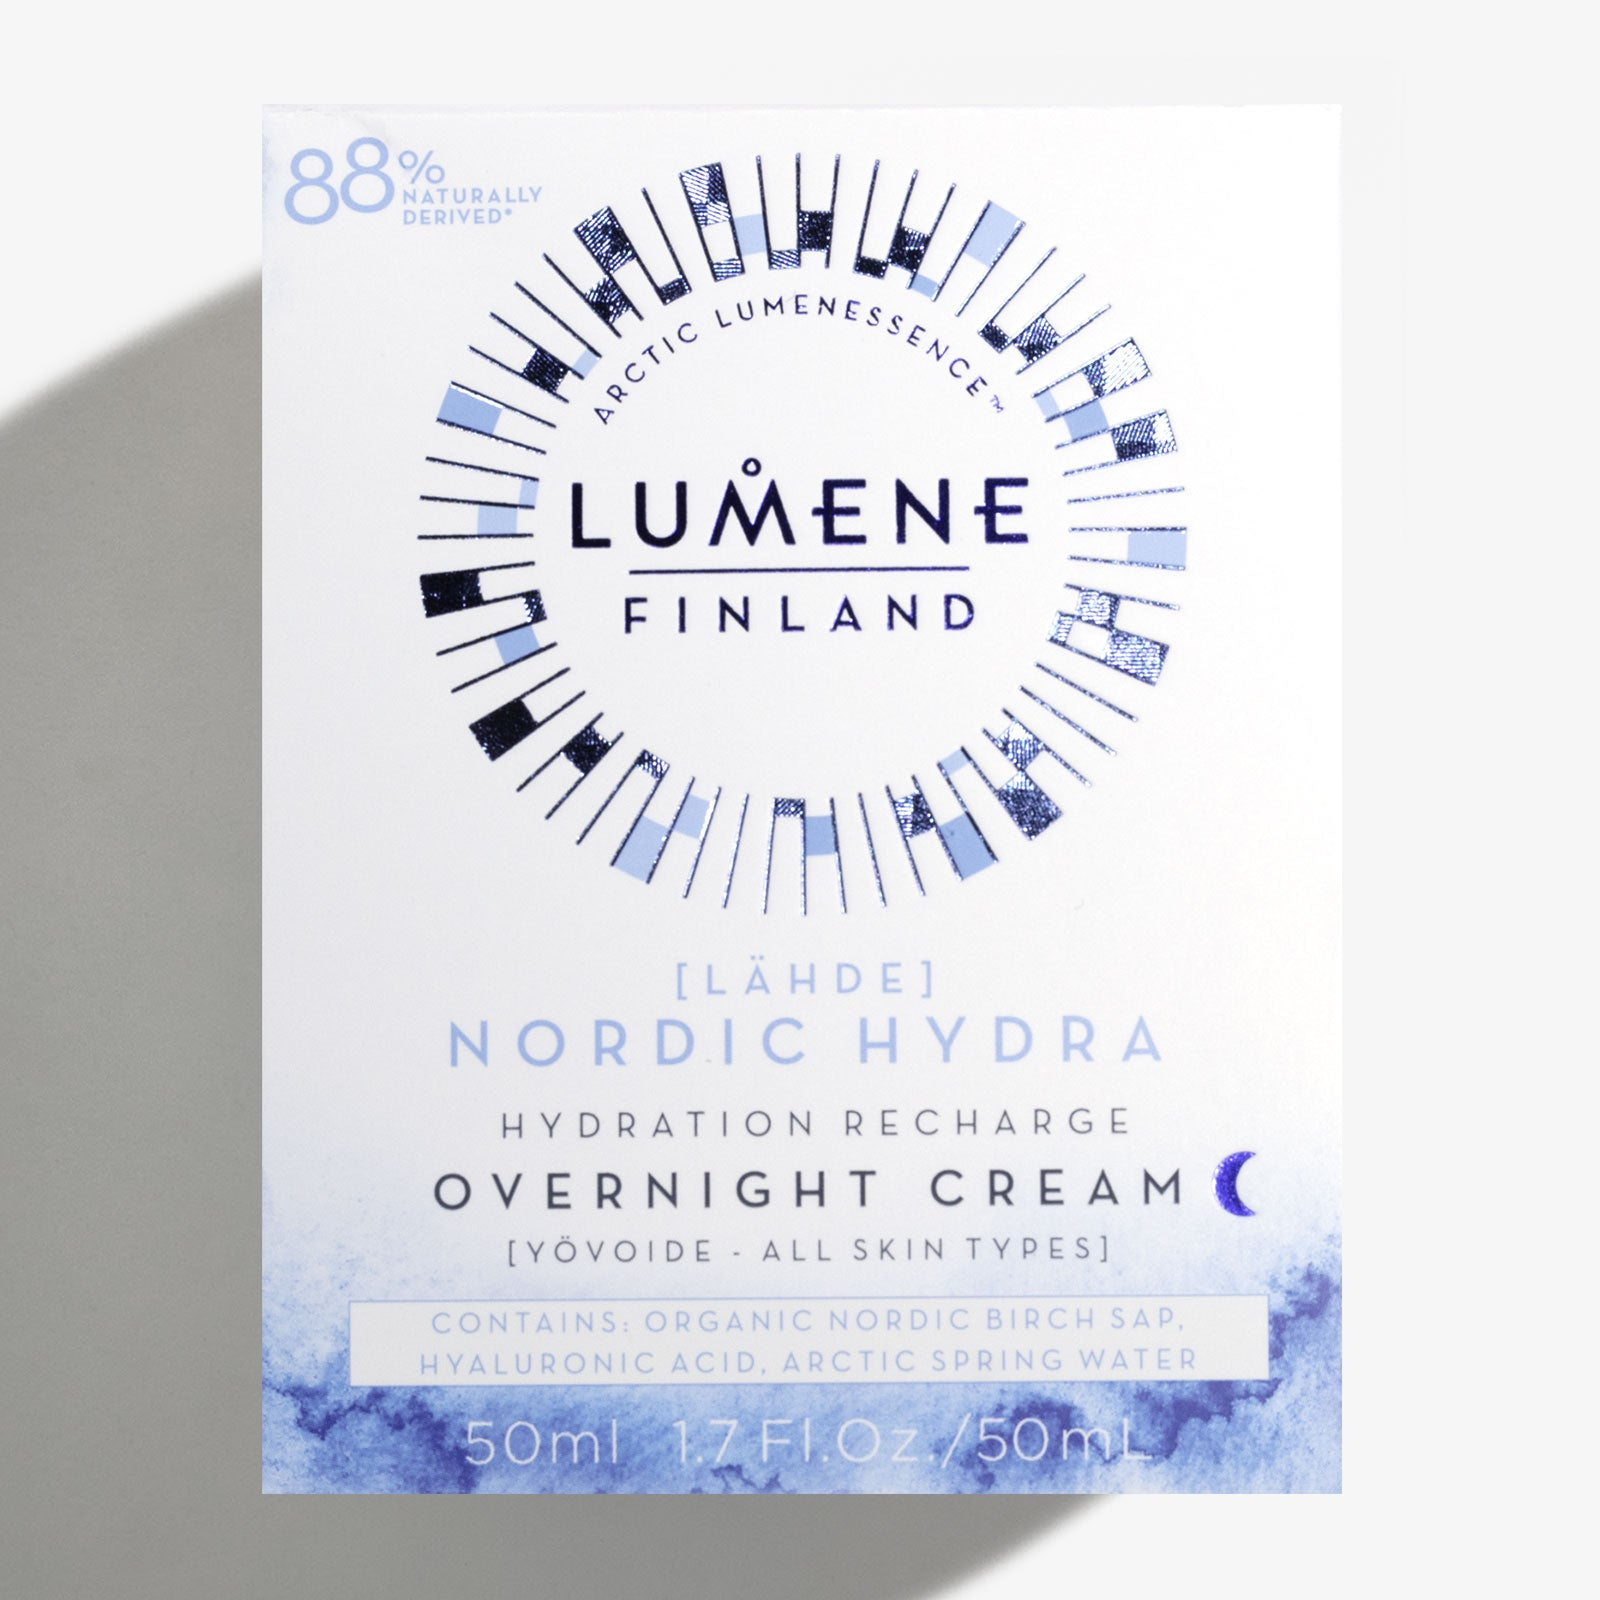 Lumene Nordic Hydra [Lähde] Hydration Recharge Overnight Cream 50ml